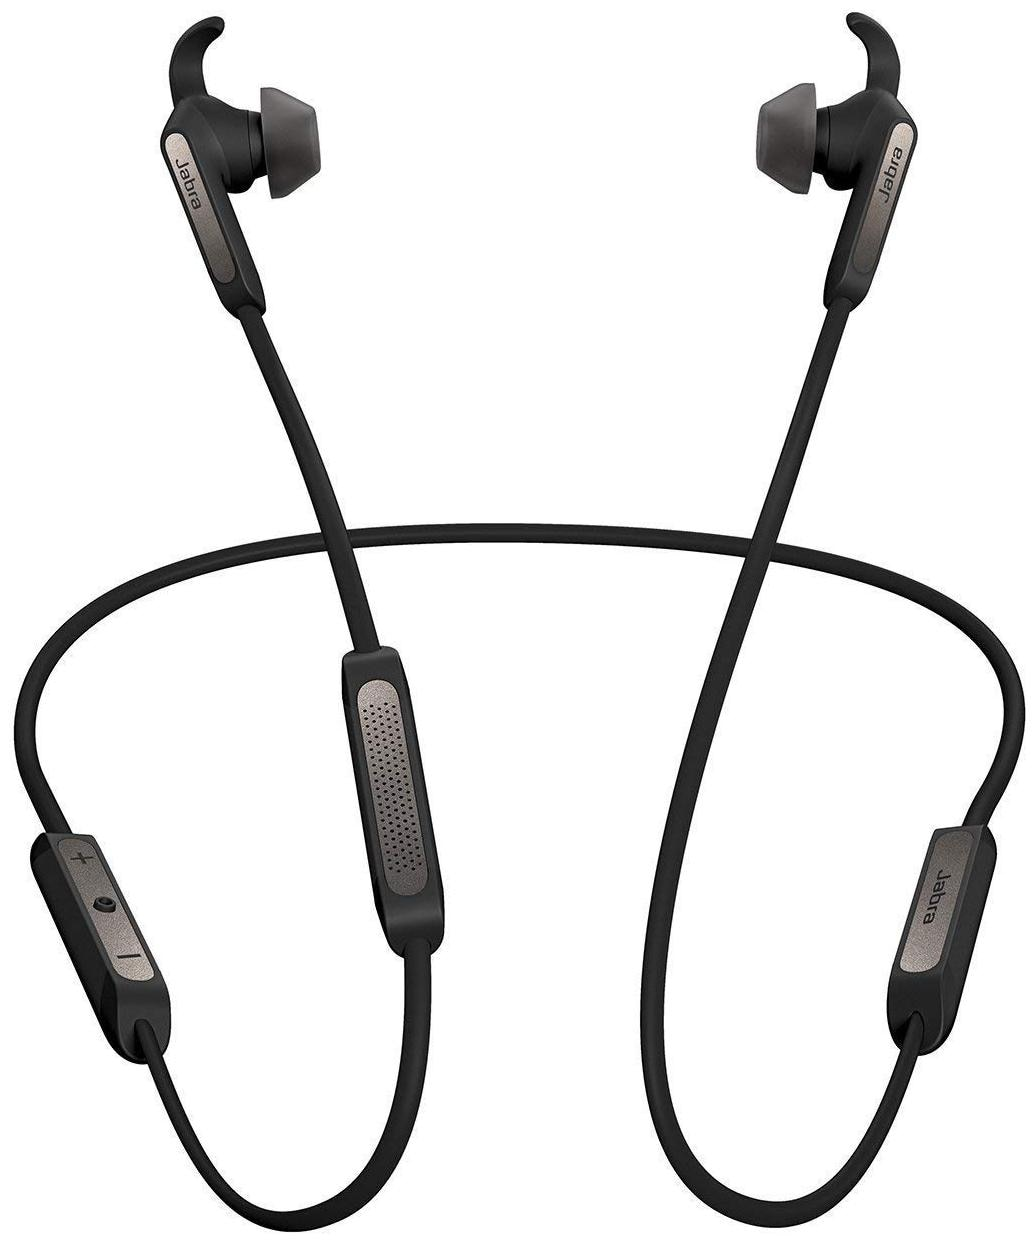 Jabra Elite 45e Wireless Bluetooth in-Ear Headphones (Titanium Black)